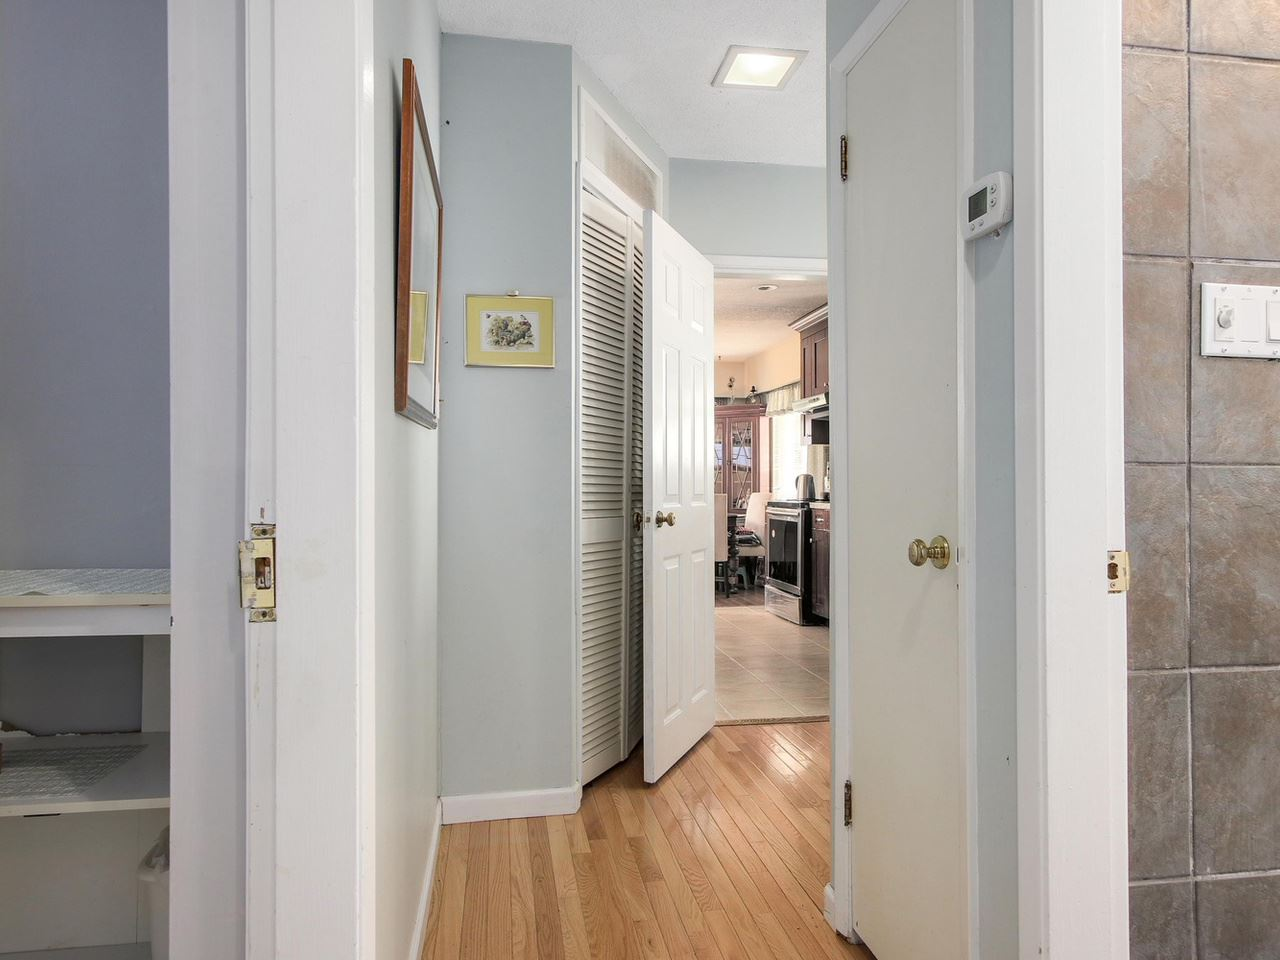 Photo 9: Photos: 1520 MACGOWAN Avenue in North Vancouver: Norgate House for sale : MLS®# R2137032